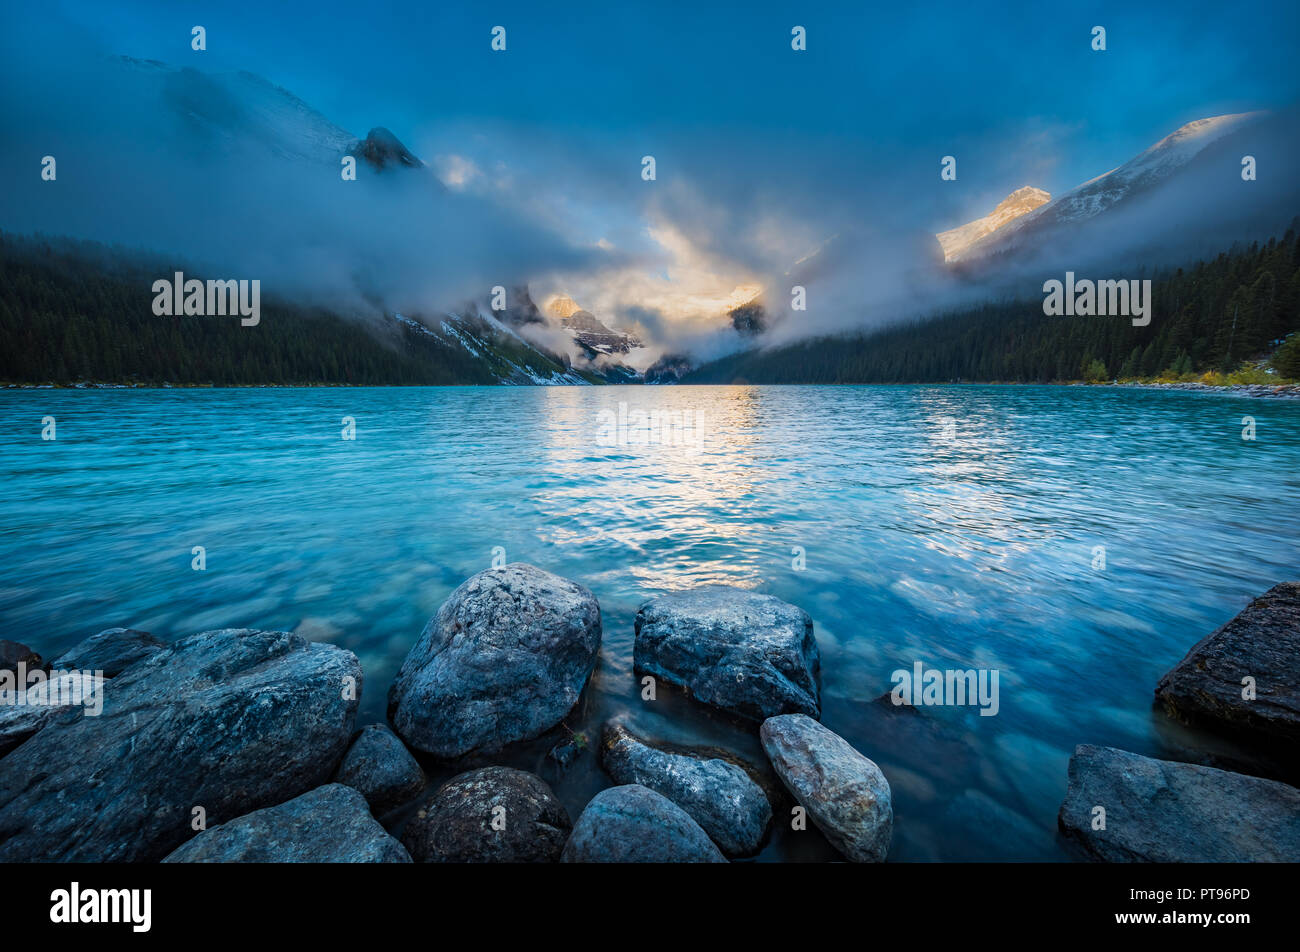 Lake Louise, named Lake of the Little Fishes by the Stoney Nakota First Nations people, is a glacial lake within Banff National Park in Alberta, Canad - Stock Image